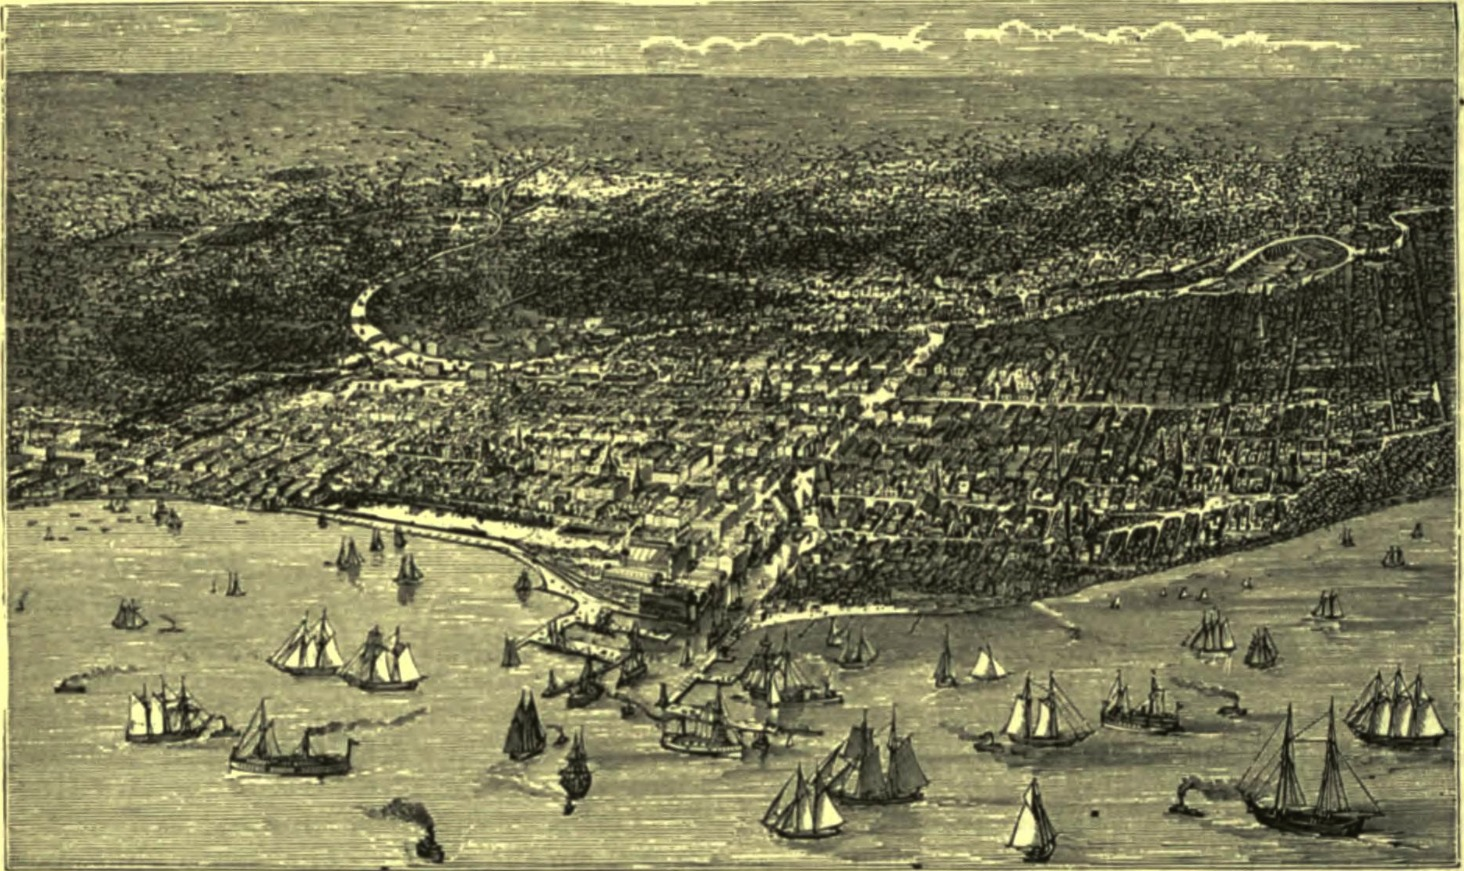 Chicago, shortly before 1871 By unknown artist (The American Cyclopædia, v. 4, 1879, p. 398.) [Public domain], via Wikimedia Commons